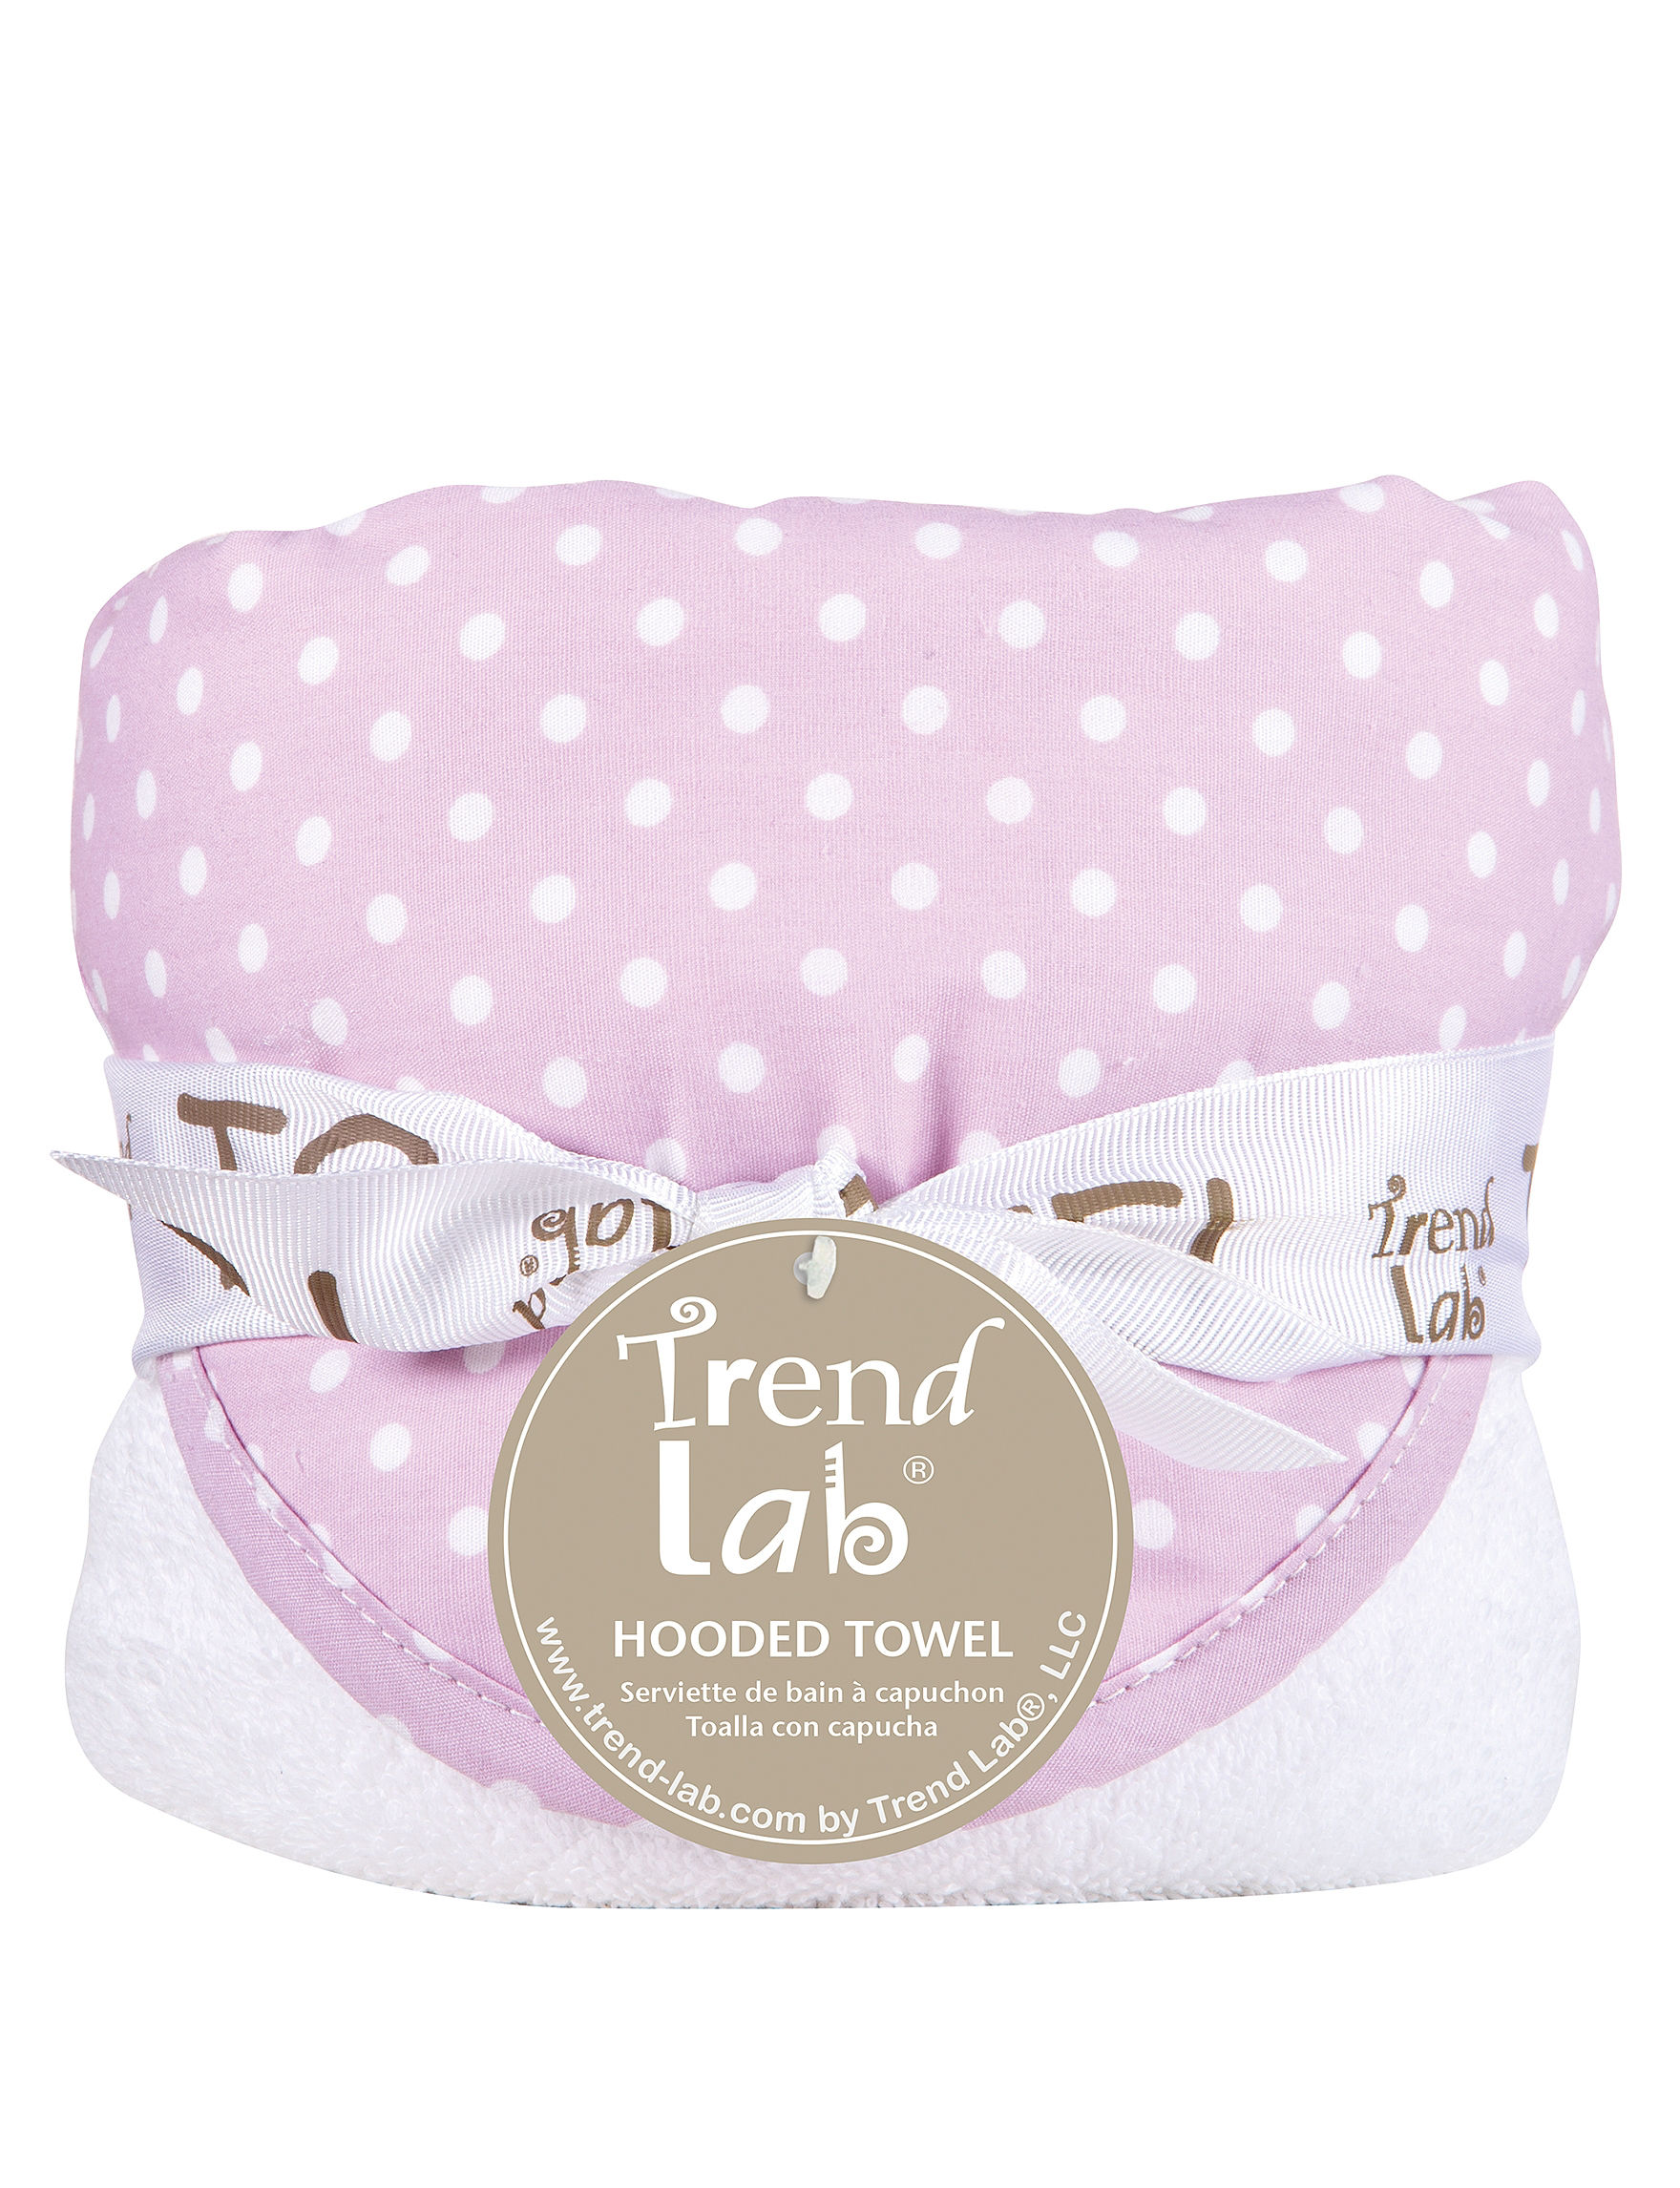 Trend Lab Purple / White Hooded Towels